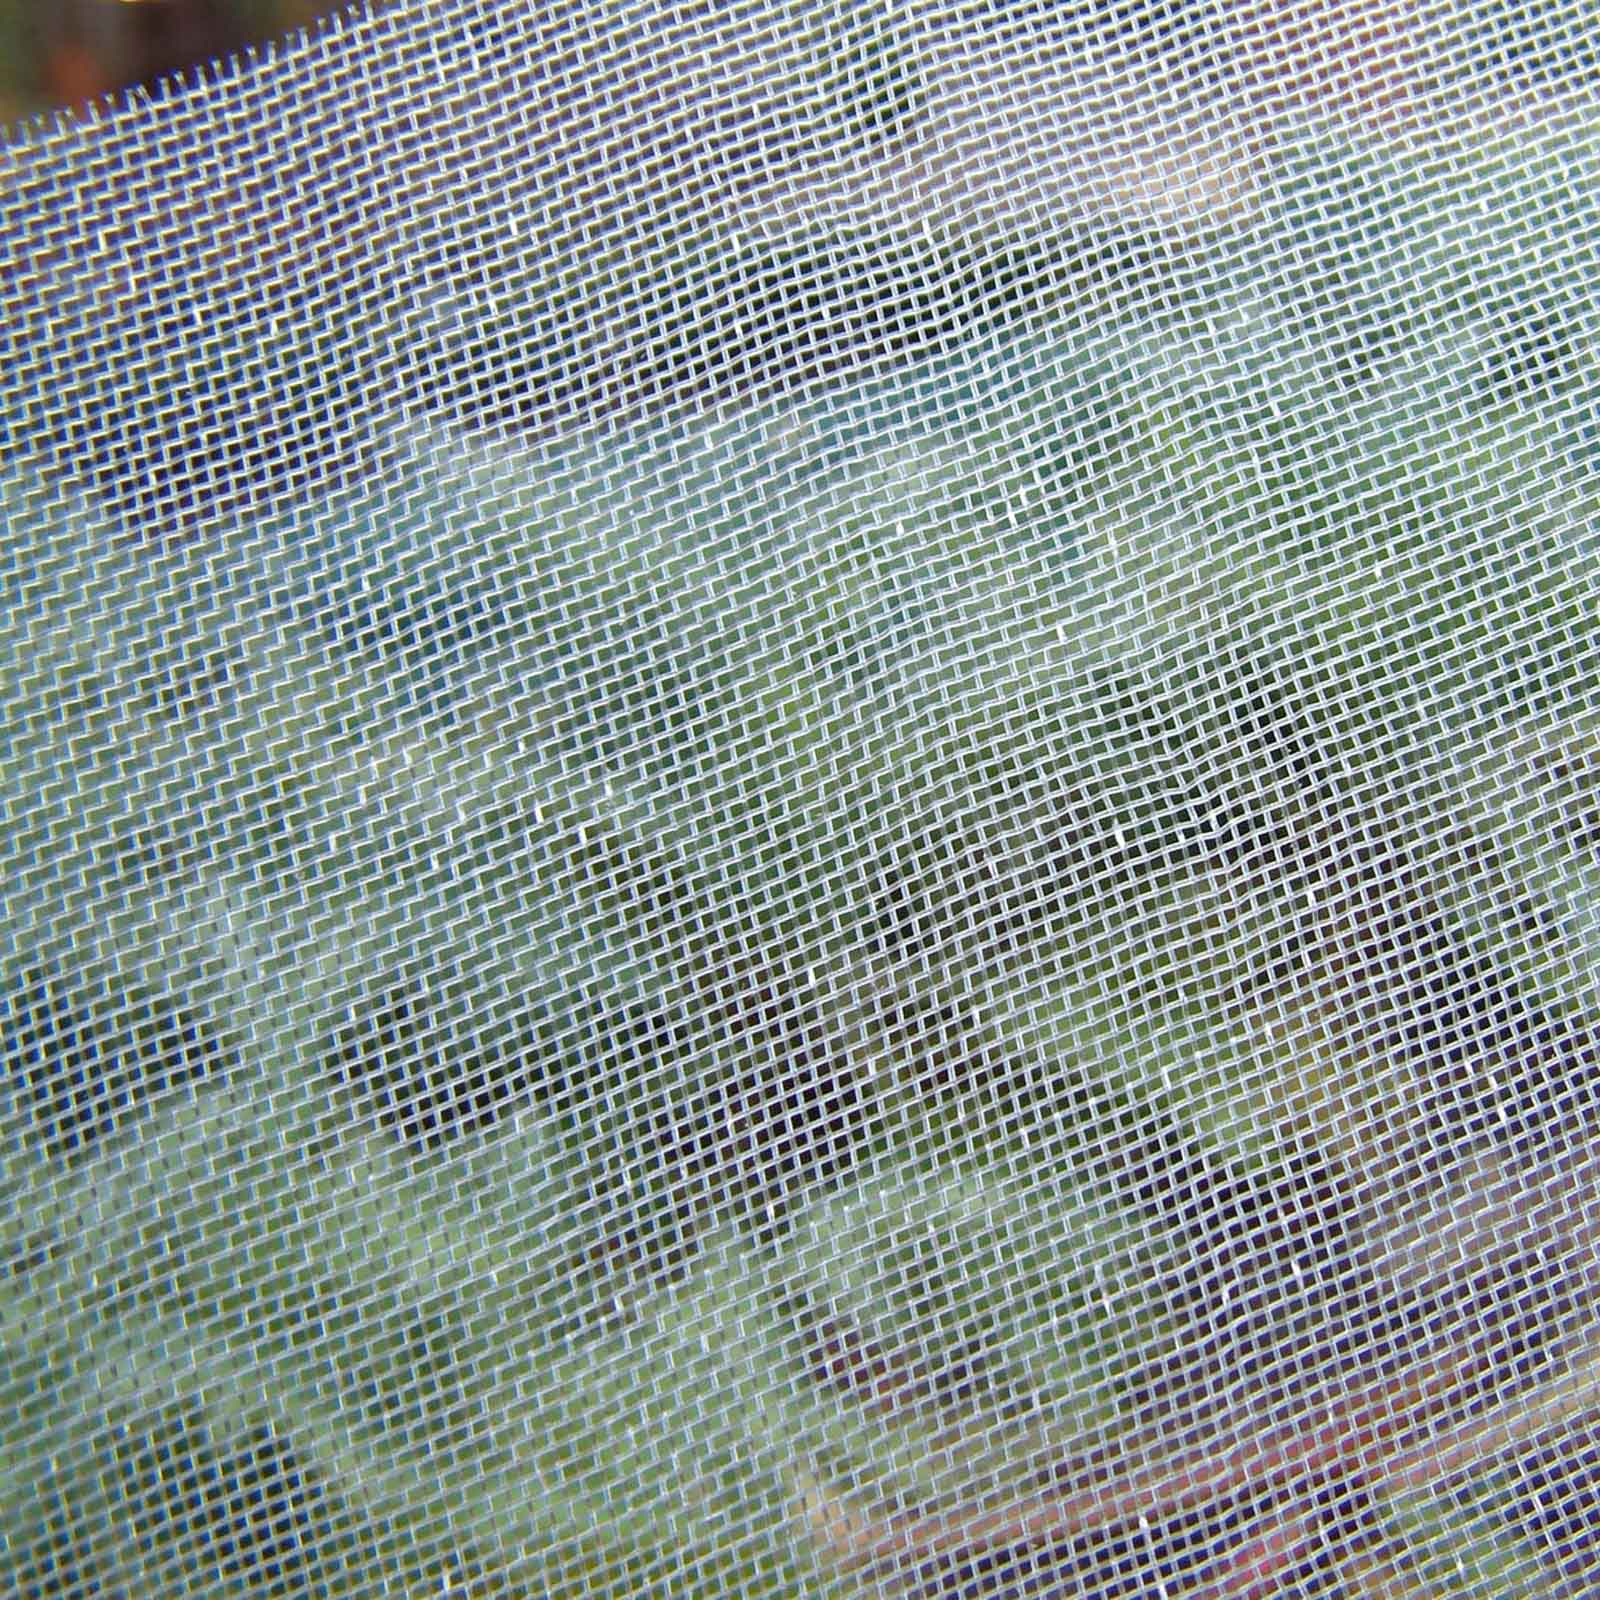 Ultra Fine Insect Mesh Netting Harrod Horticultural